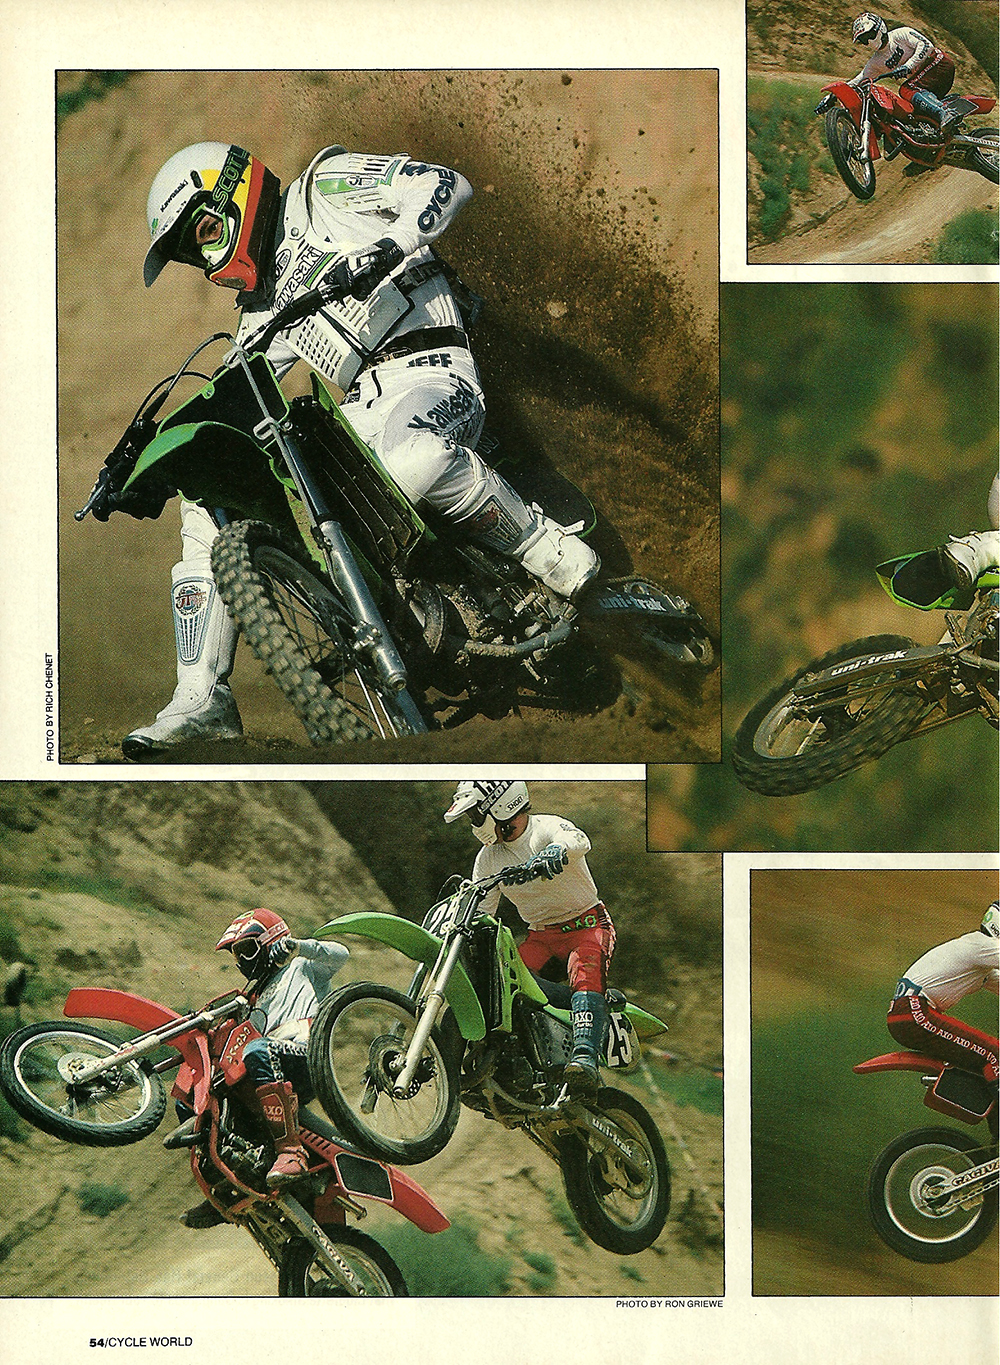 1985 Cagiva wmx125 vs Kawasaki kx125 road test 01.jpg